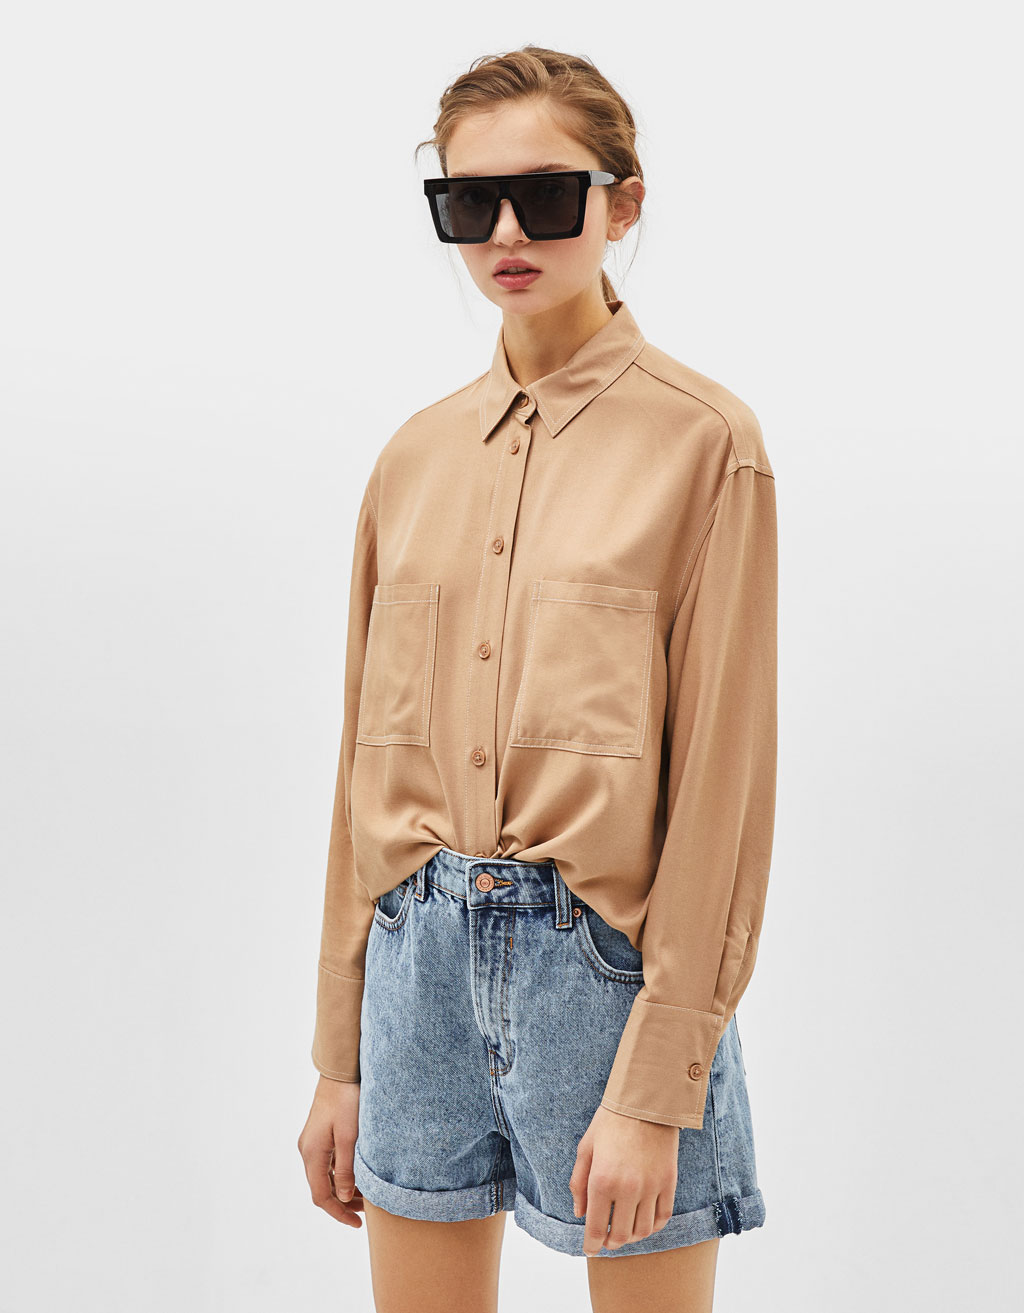 Flowing shirt with contrast seams